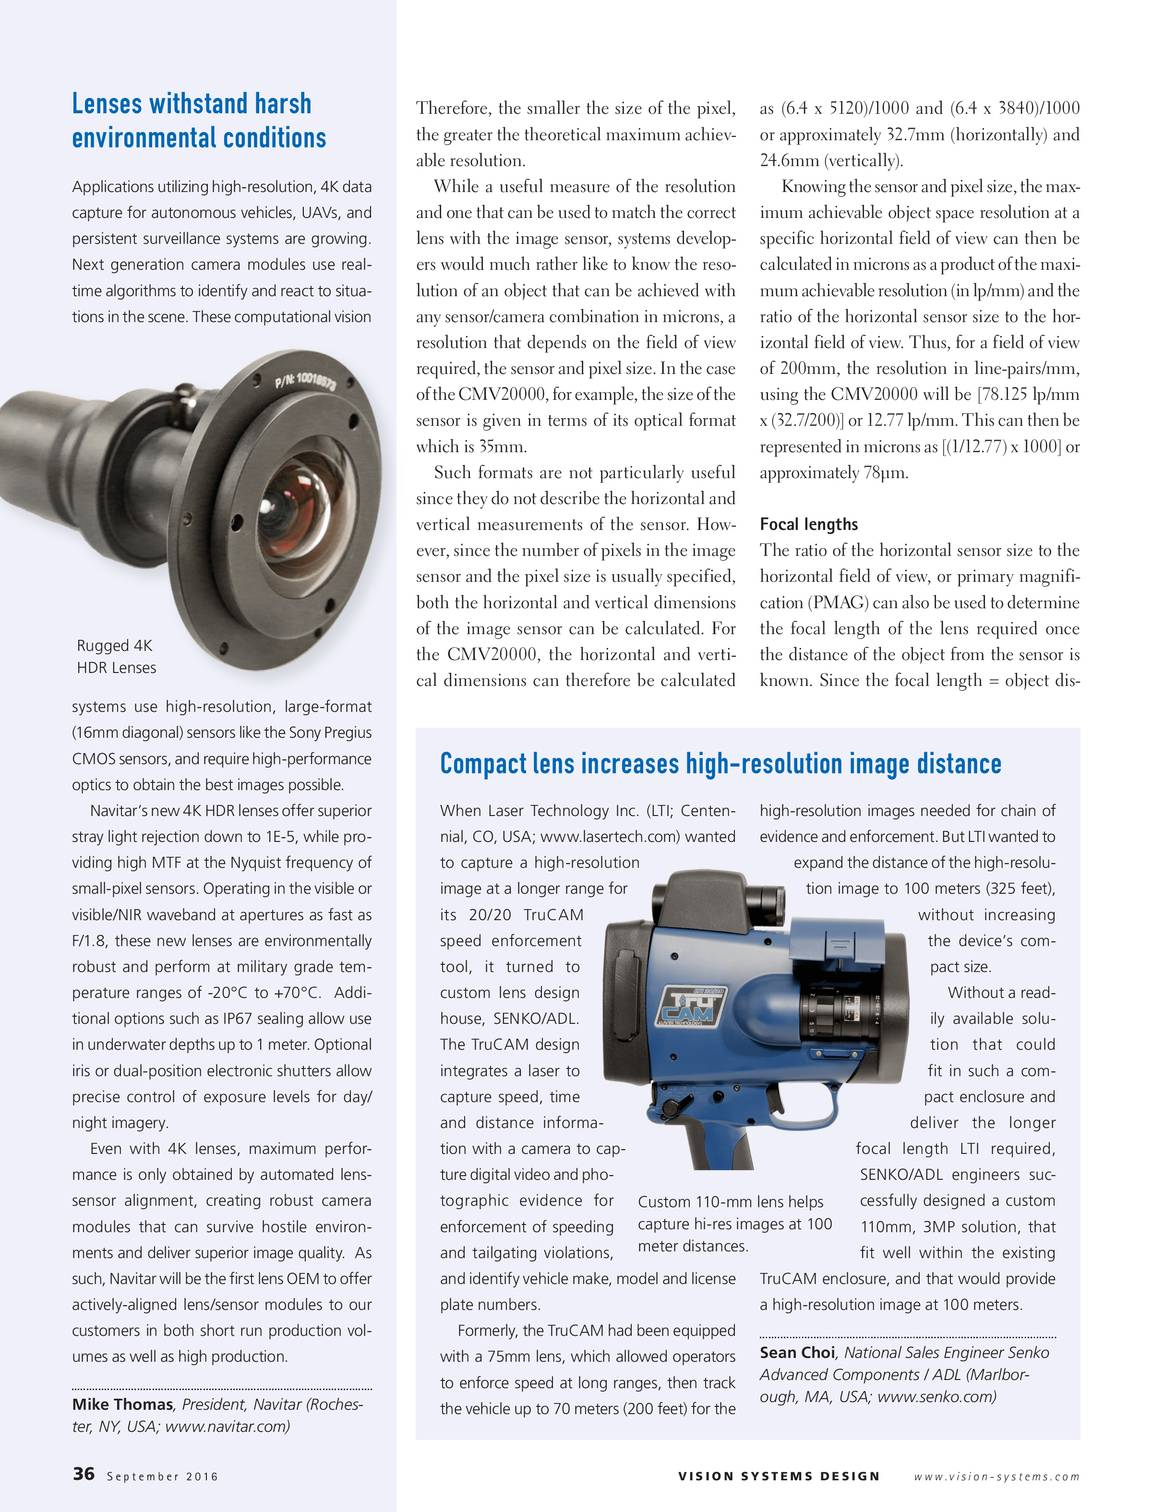 Vision Systems - September 2016 - page 36